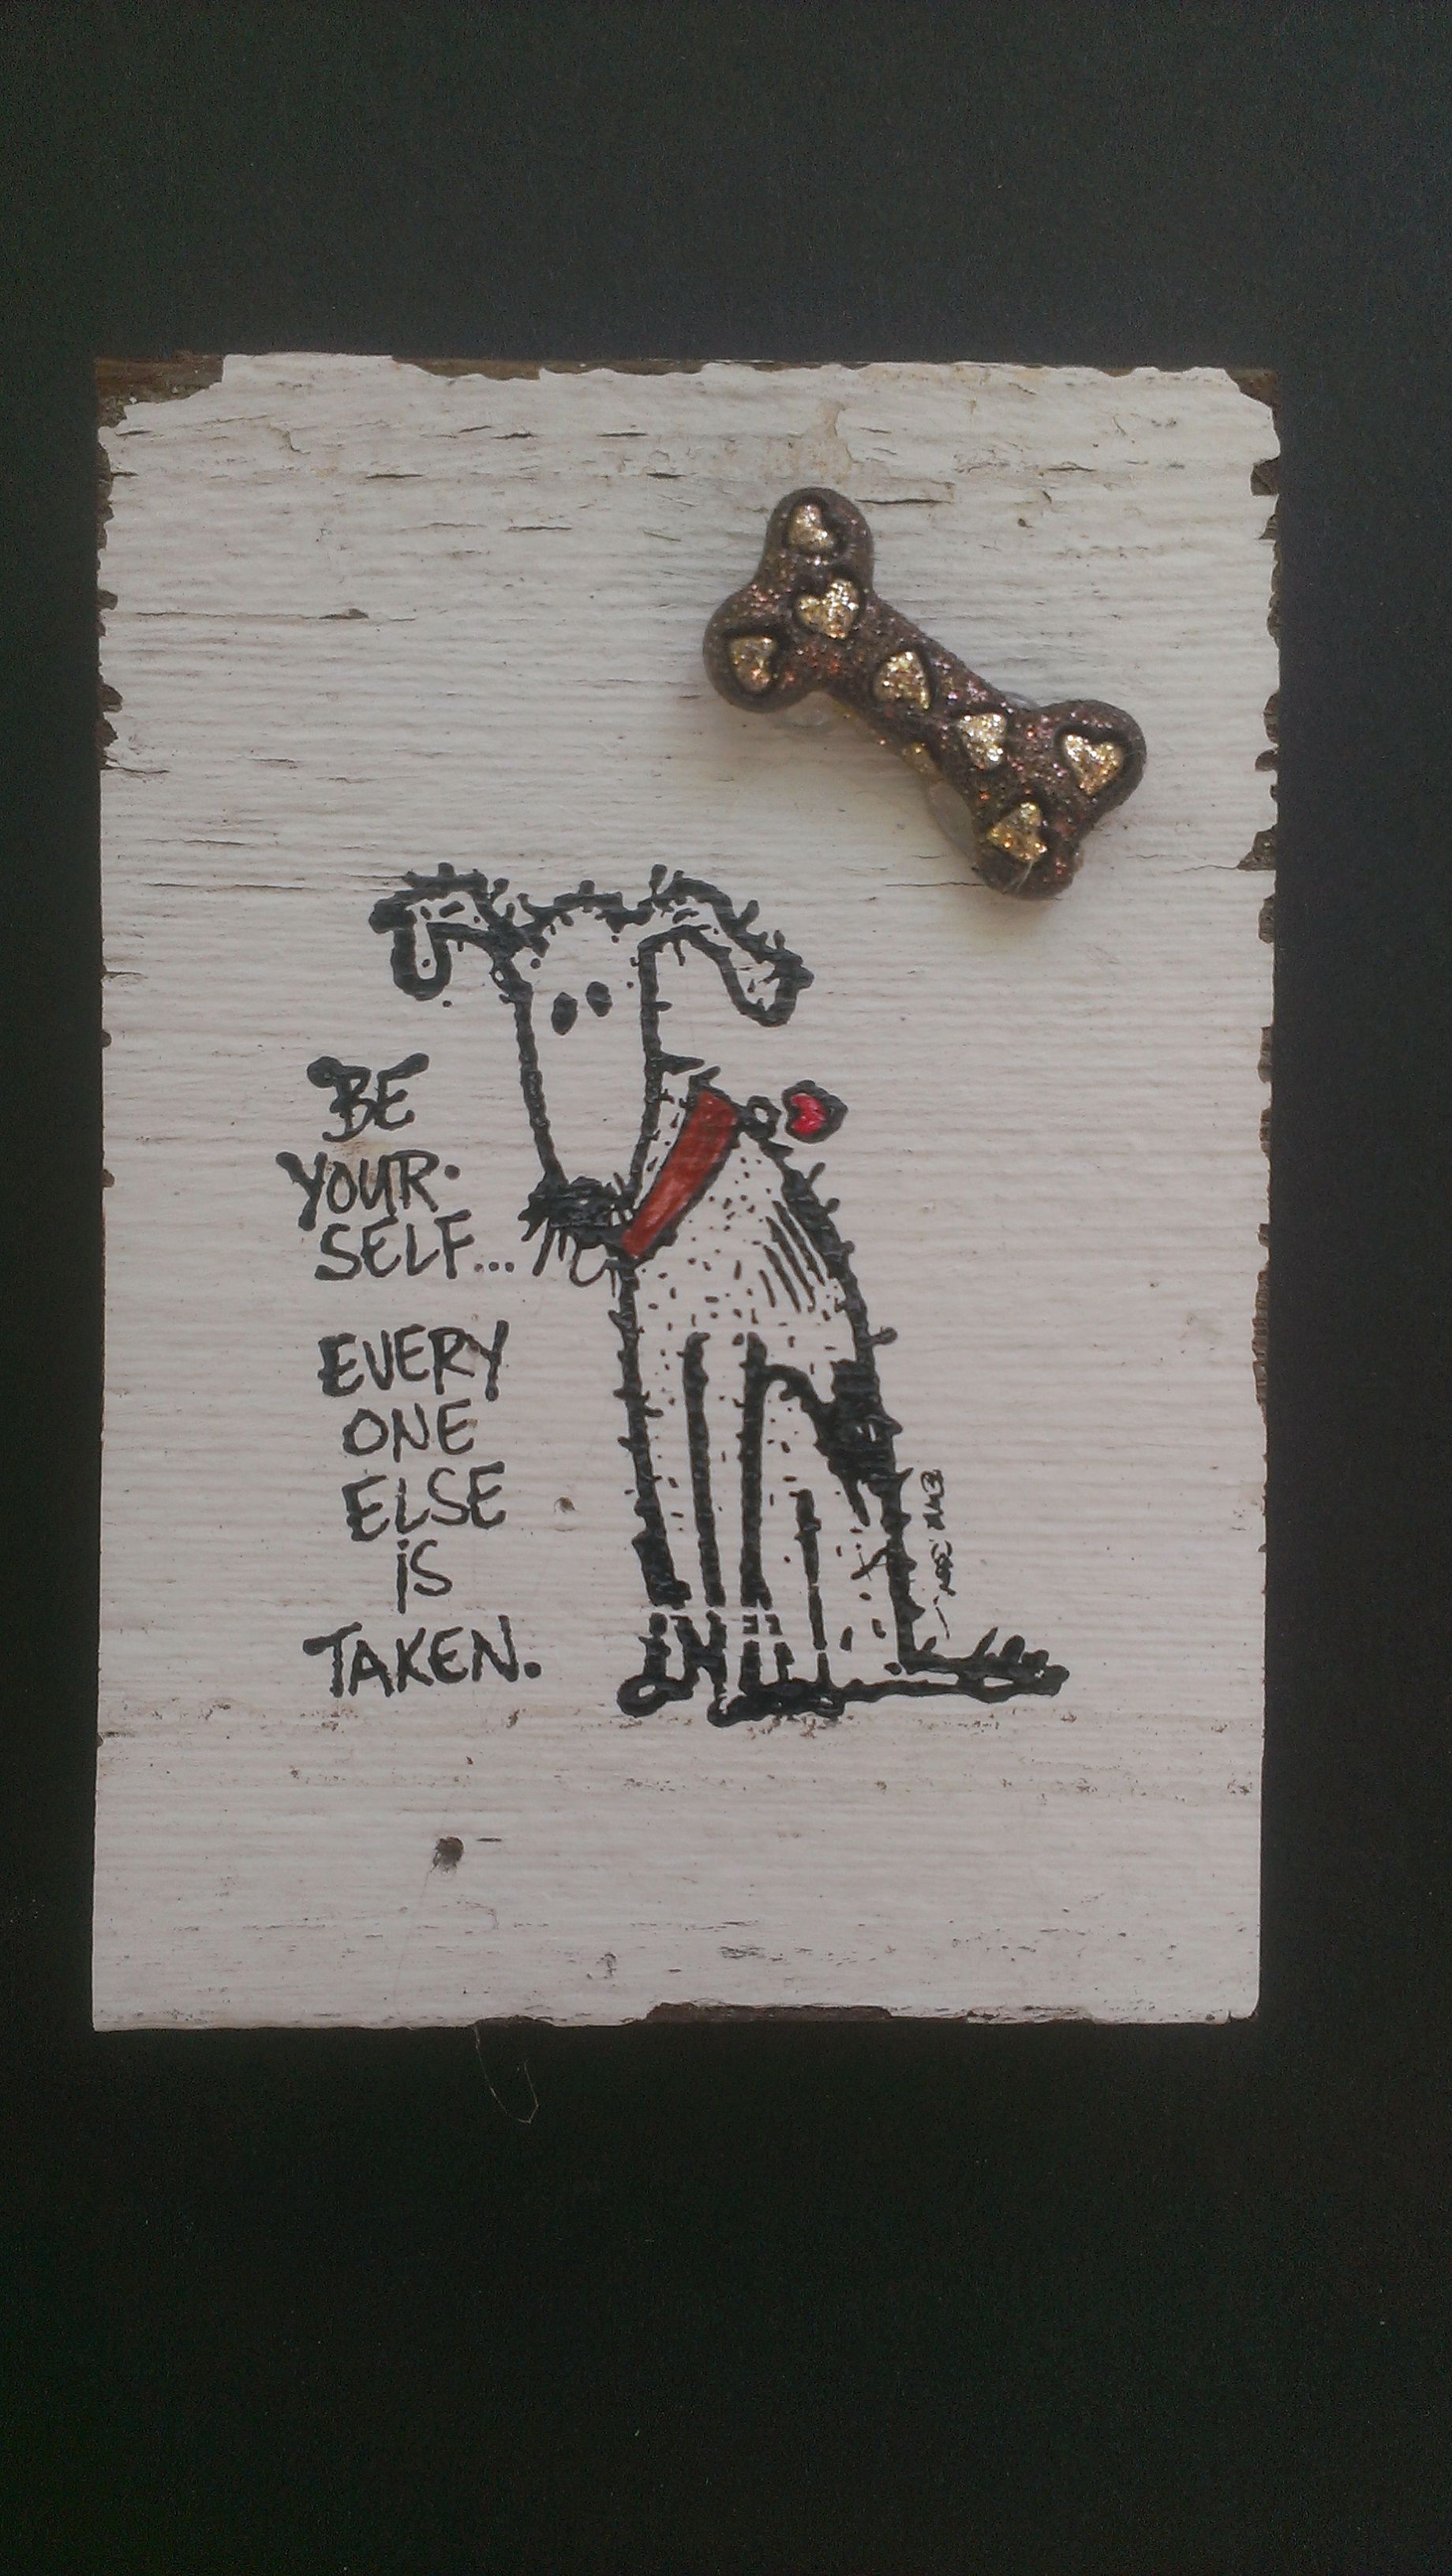 Such a cute magnet for all you DOG lovers!  But this magnet and many other cute ones on reclaimed wood at our Etsy store:  https://www.etsy.com/shop/JasonAndKimKreations?ref=search_shop_redirect